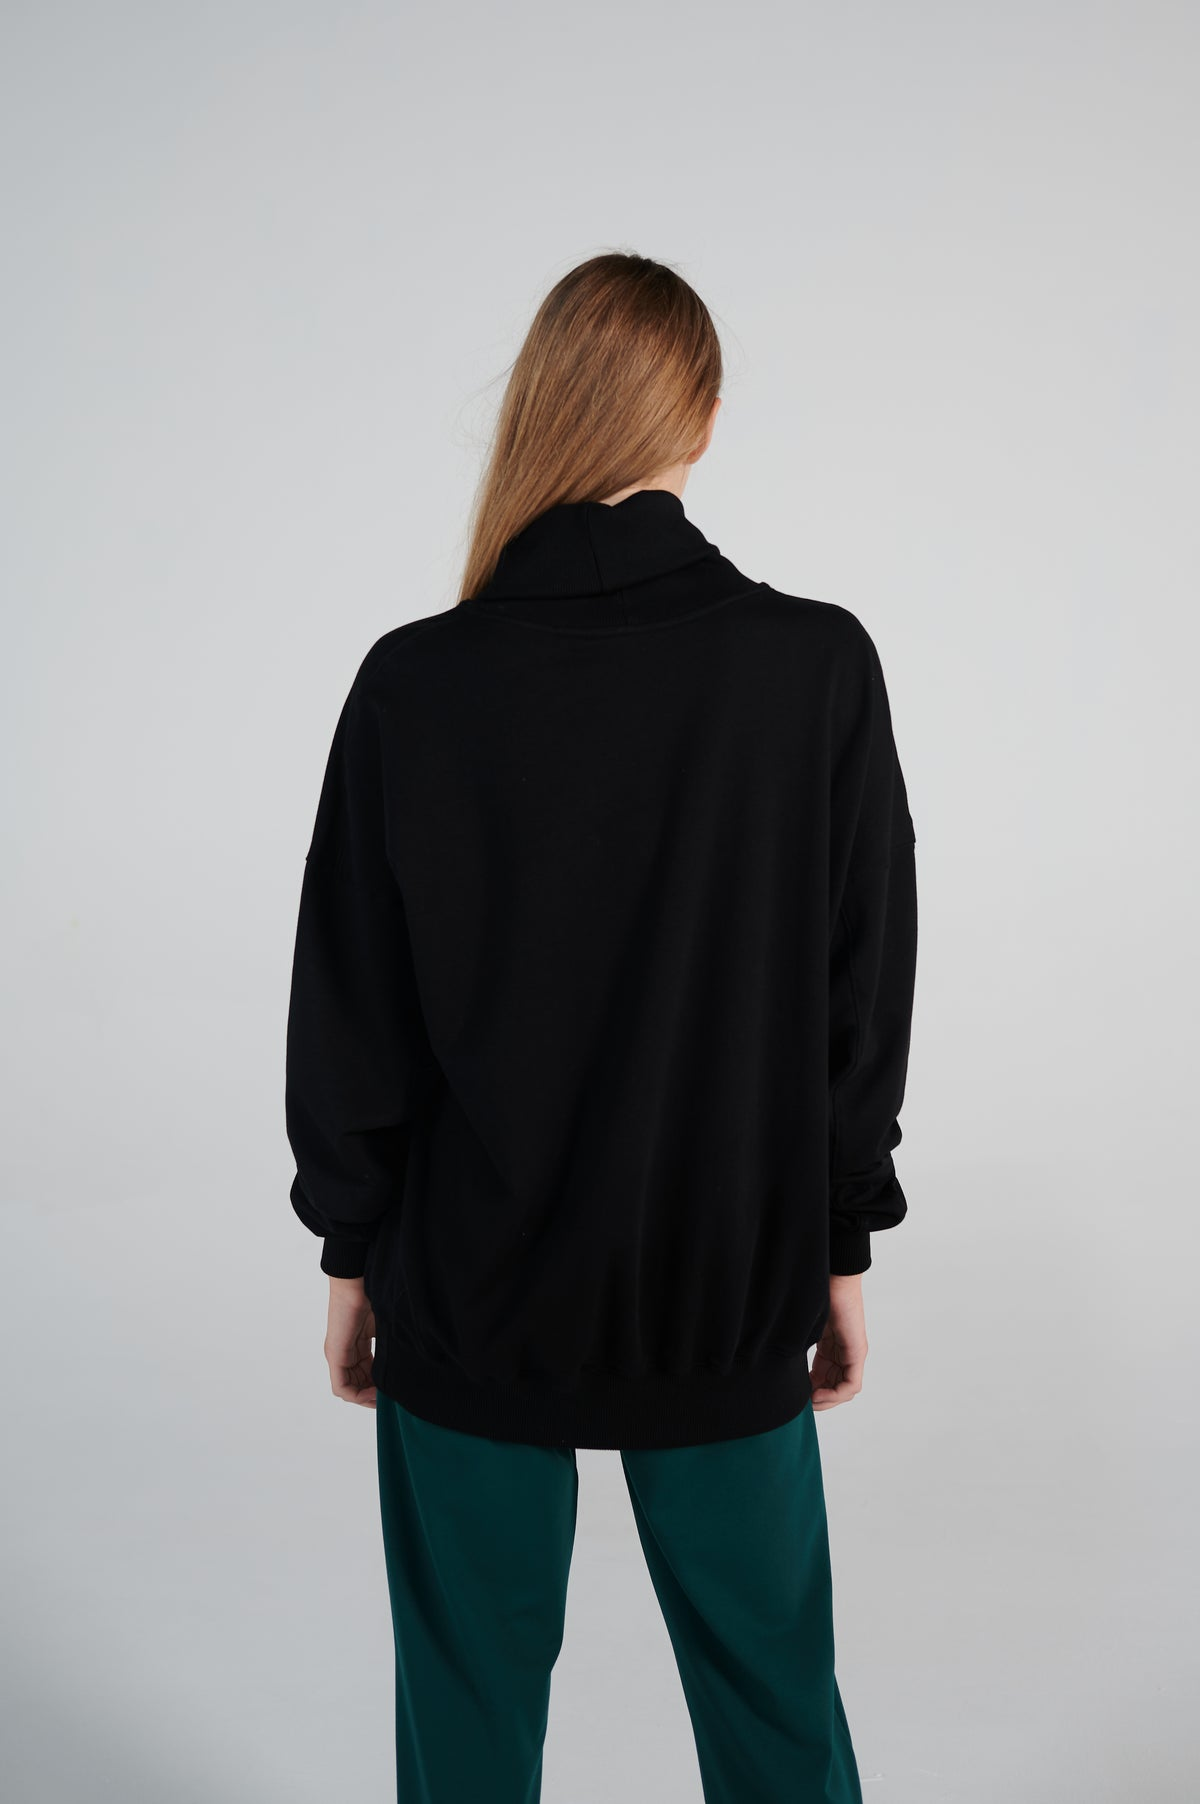 long-sleeves-unisex-turtleneck-sweater-dropped-shoulder-line-lookbook.jpg